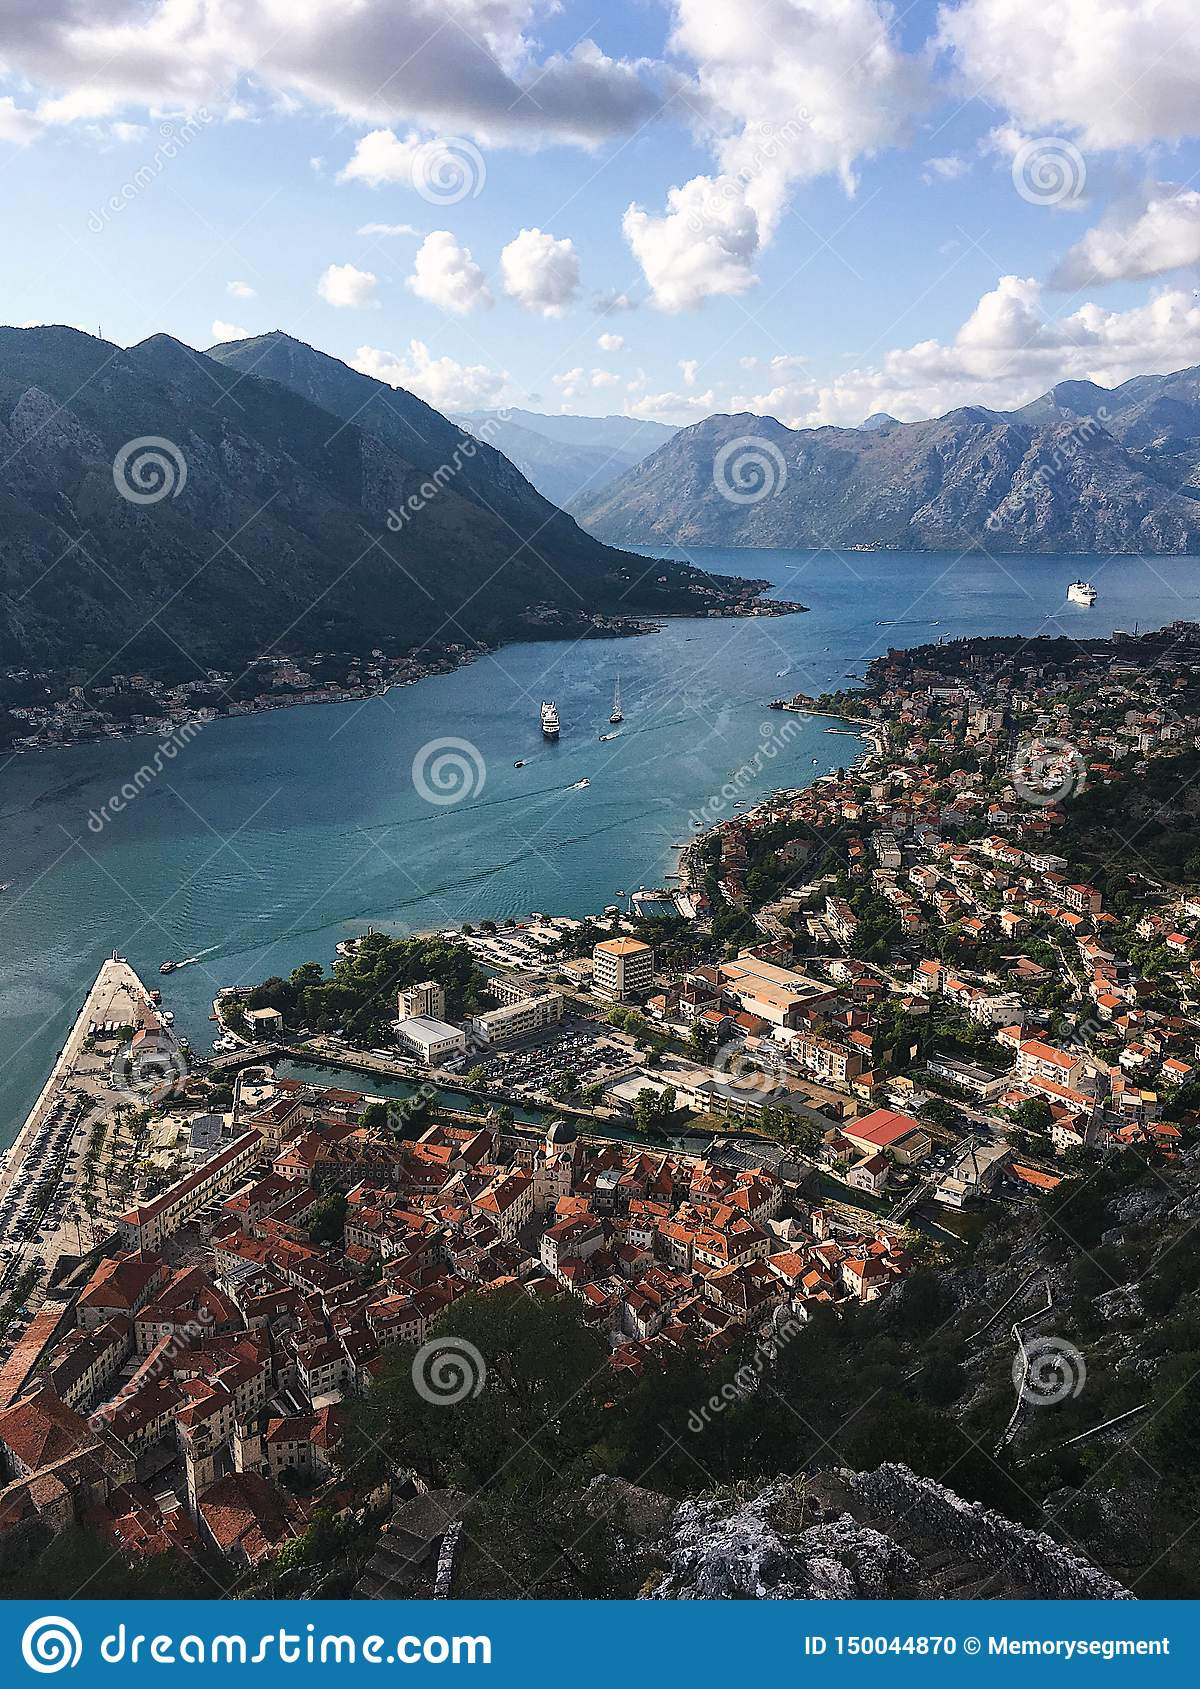 Top view of the Bay of Kotor in Montenegro. Sunny day on the Adriatic coast of Kotor